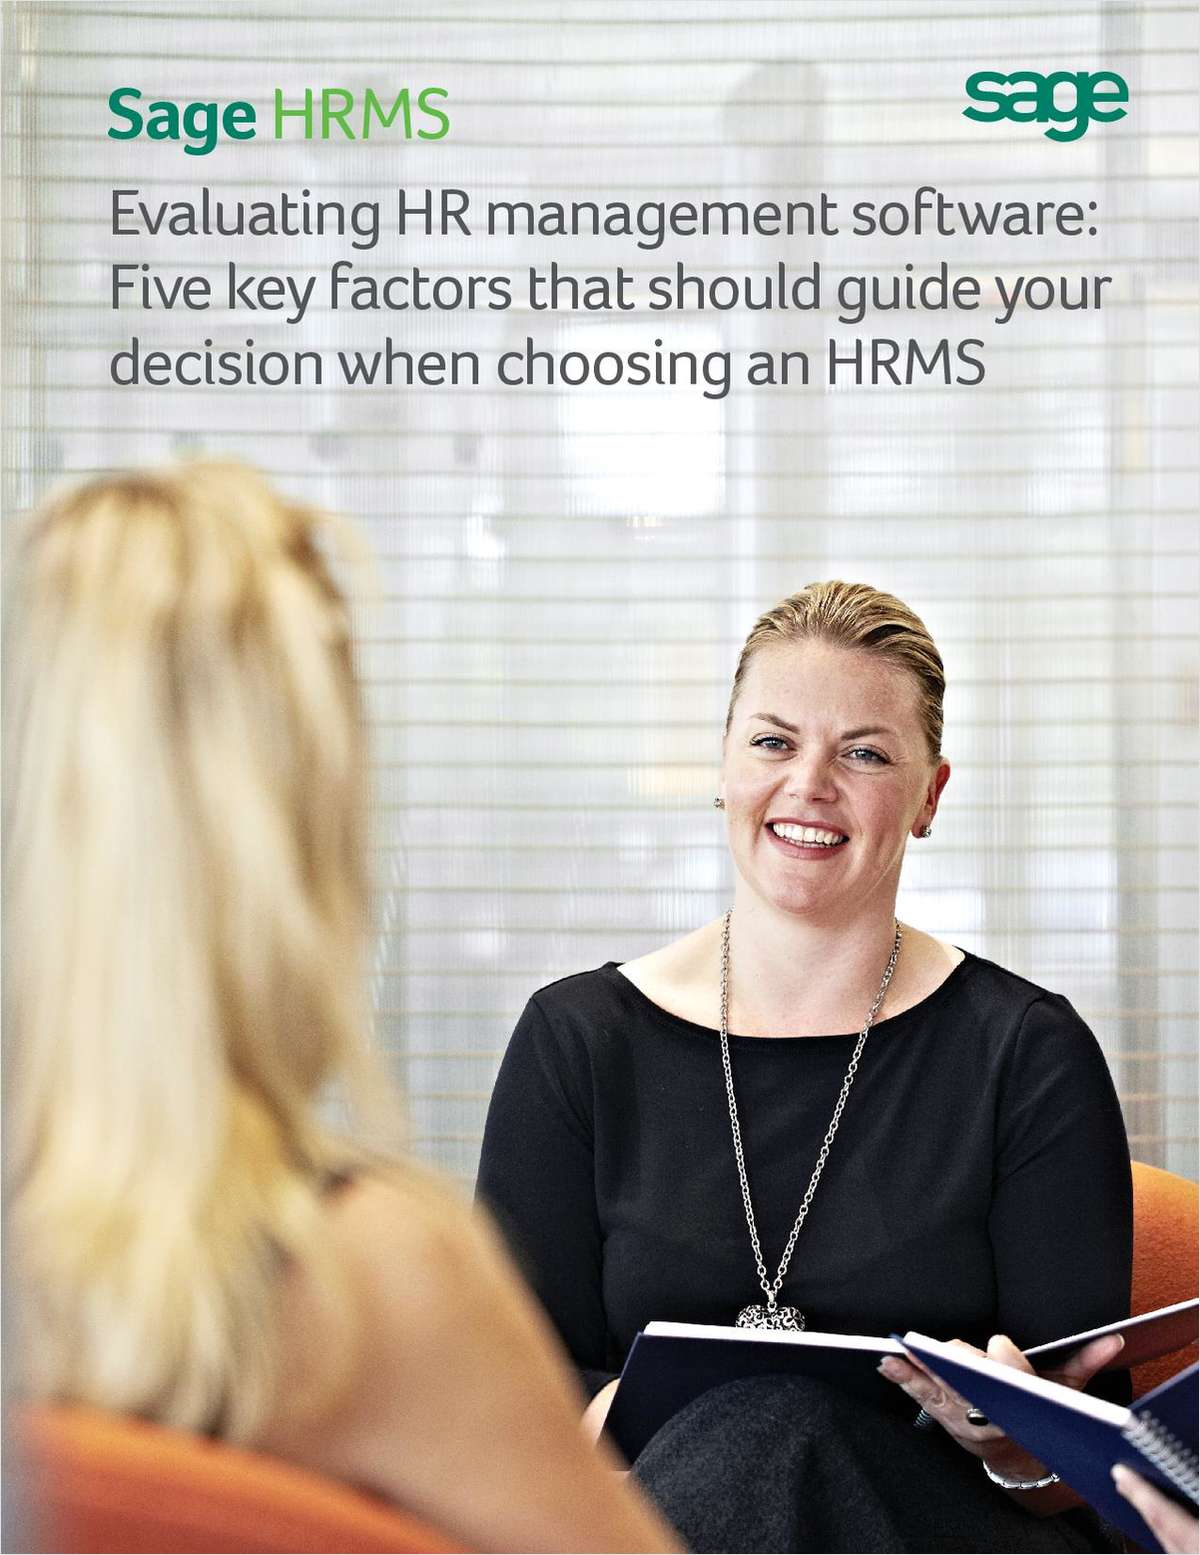 Five Key Factors that Should Guide Your Decision When Choosing HR Management Software